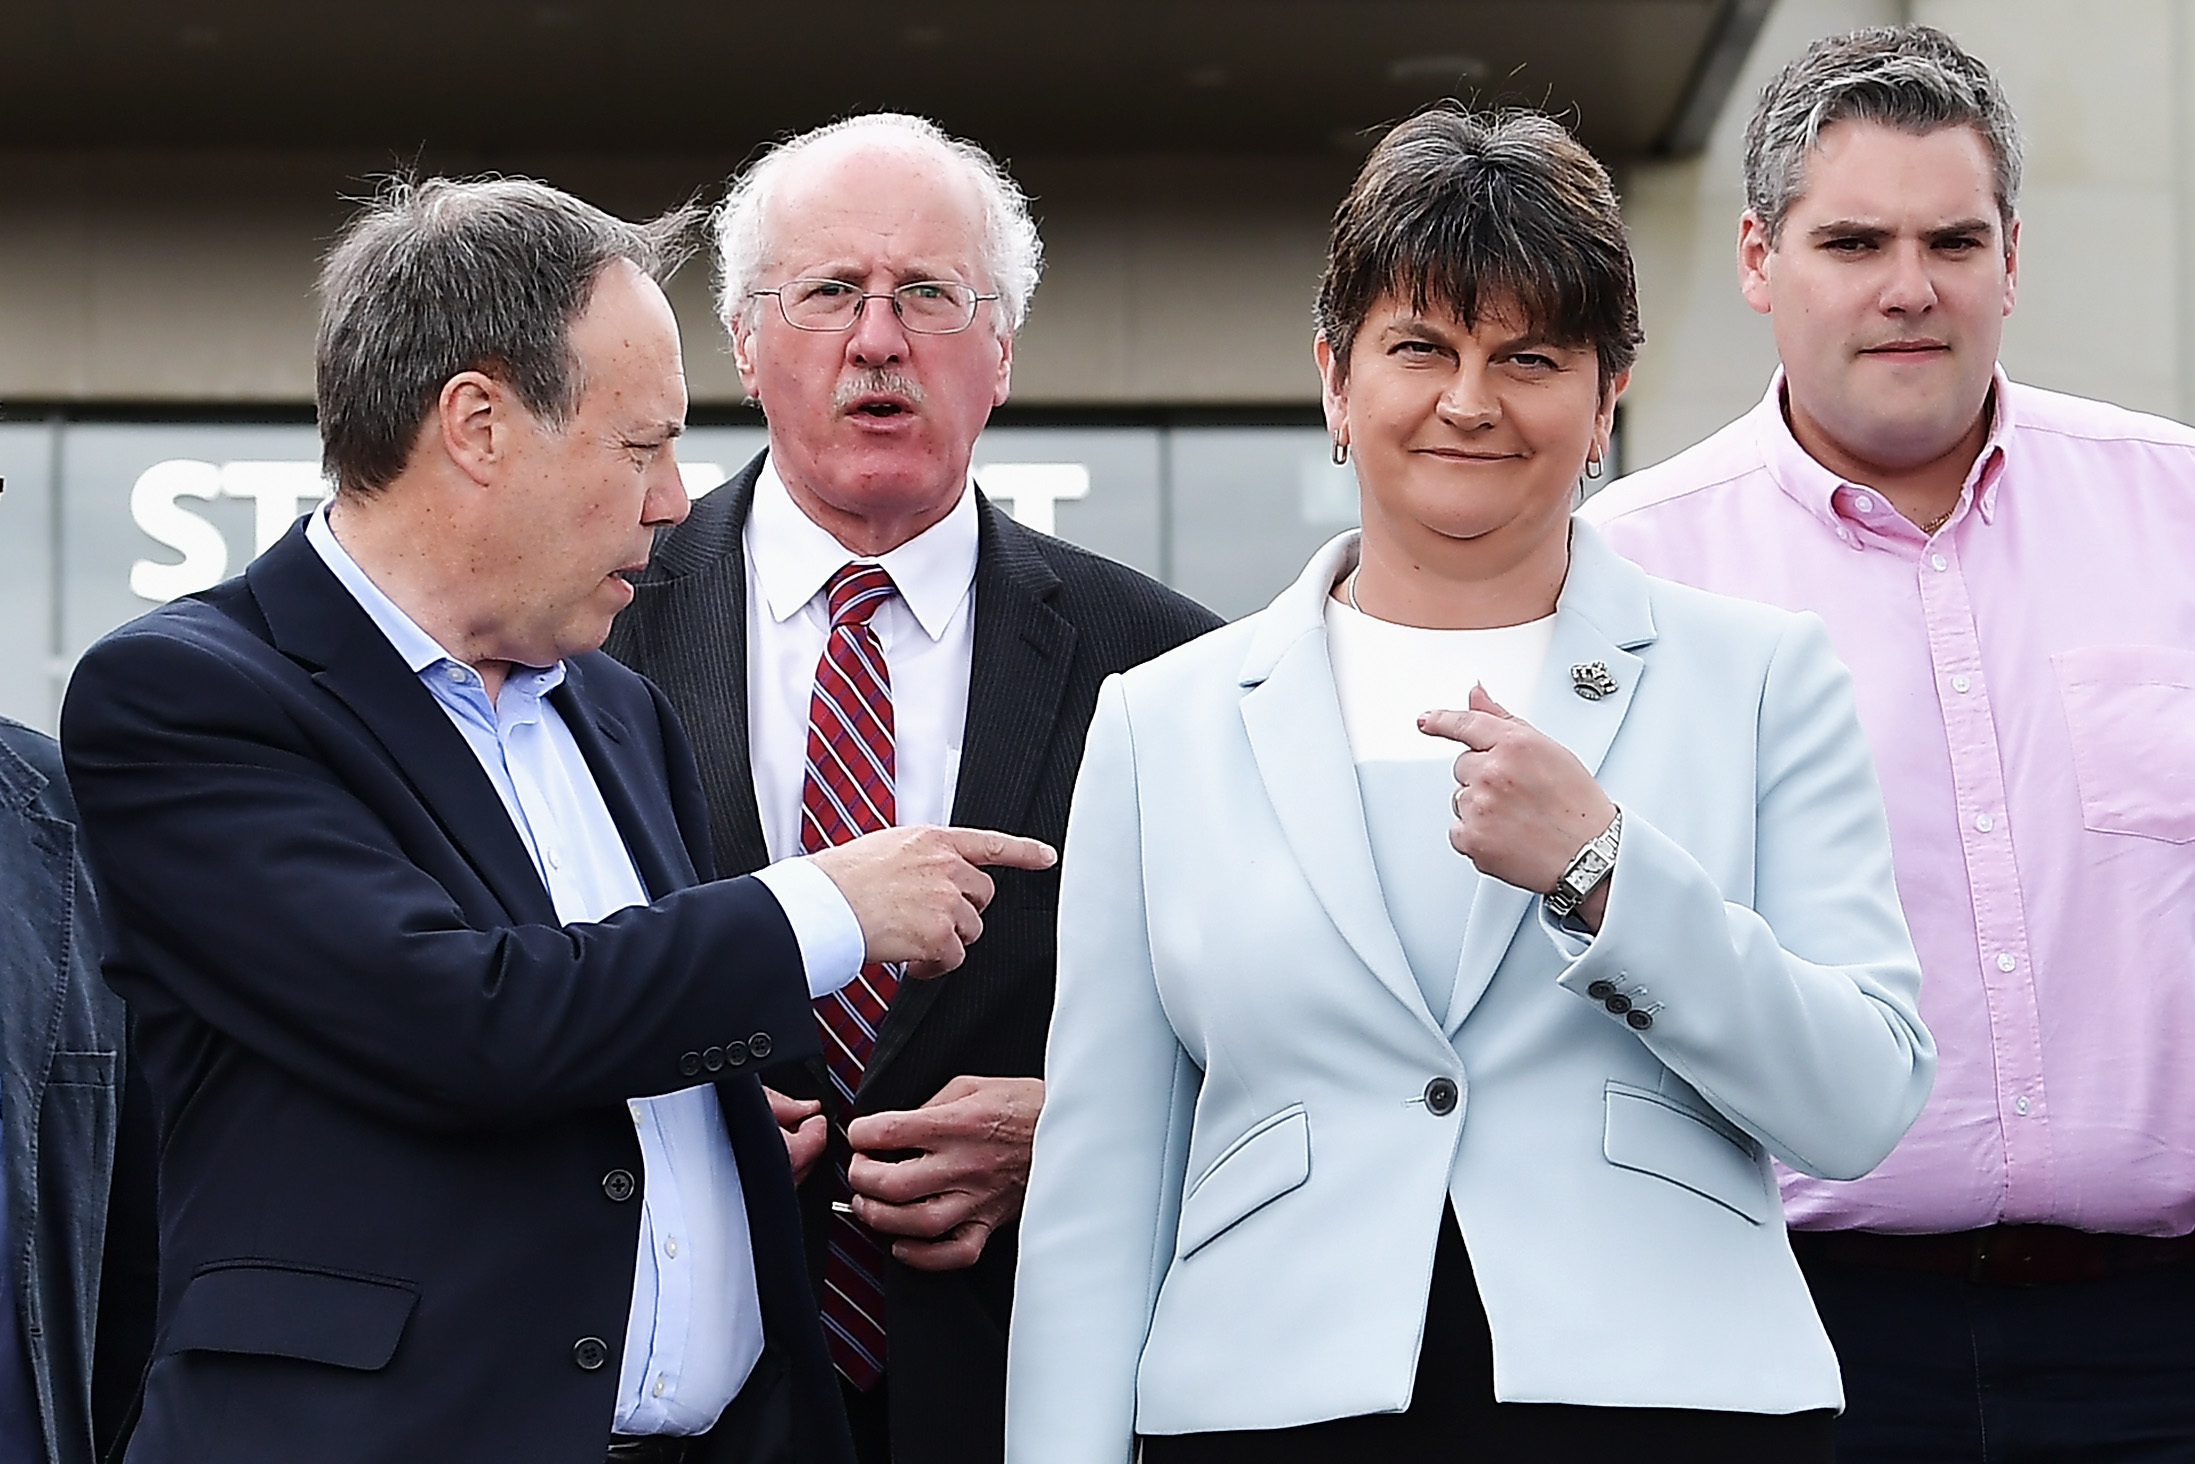 DUP Leader Arlene Foster (R) stands with DUP Deputy Leader Nigel Dodds (L) and fellow DUP MP's after addressing the news of a possible Parliamentary agreement with the Conservative party following yesterday's election on June 9, 2017 in Belfast, Northern Ireland. (Charles McQuillan/Getty Images)